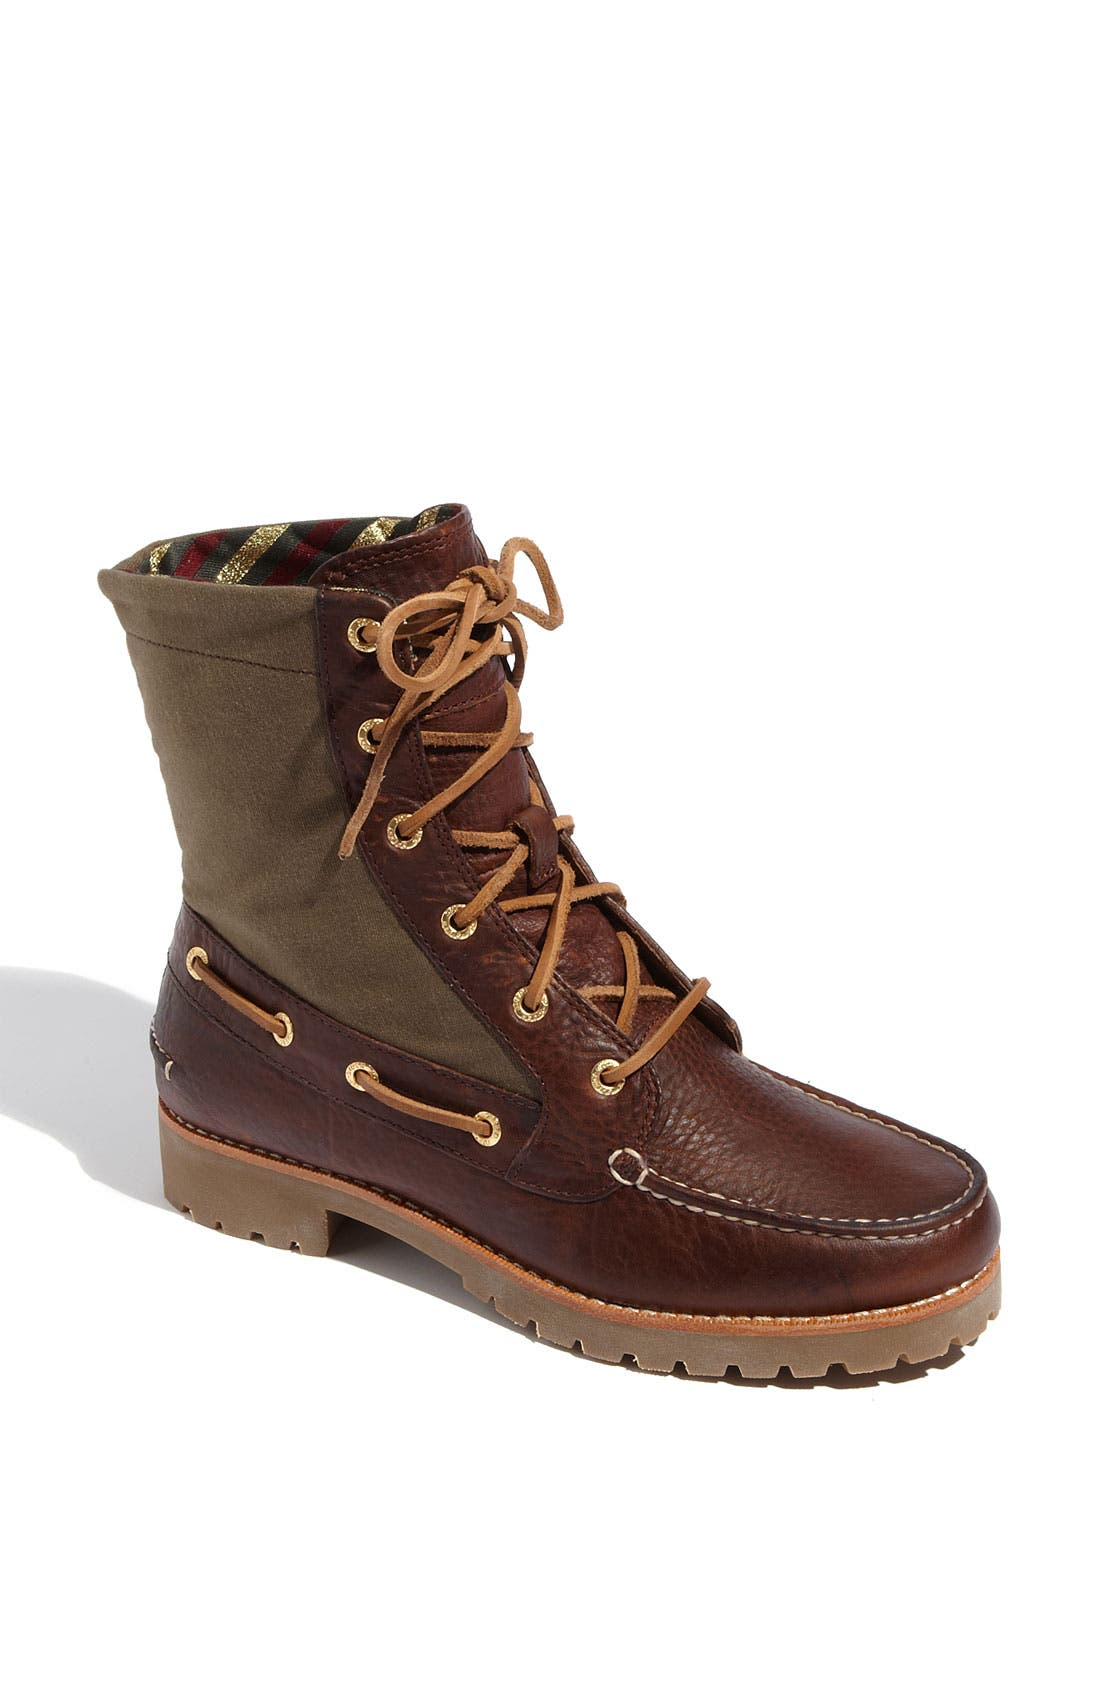 Alternate Image 1 Selected - Sperry Top-Sider® 'Avon' Boot